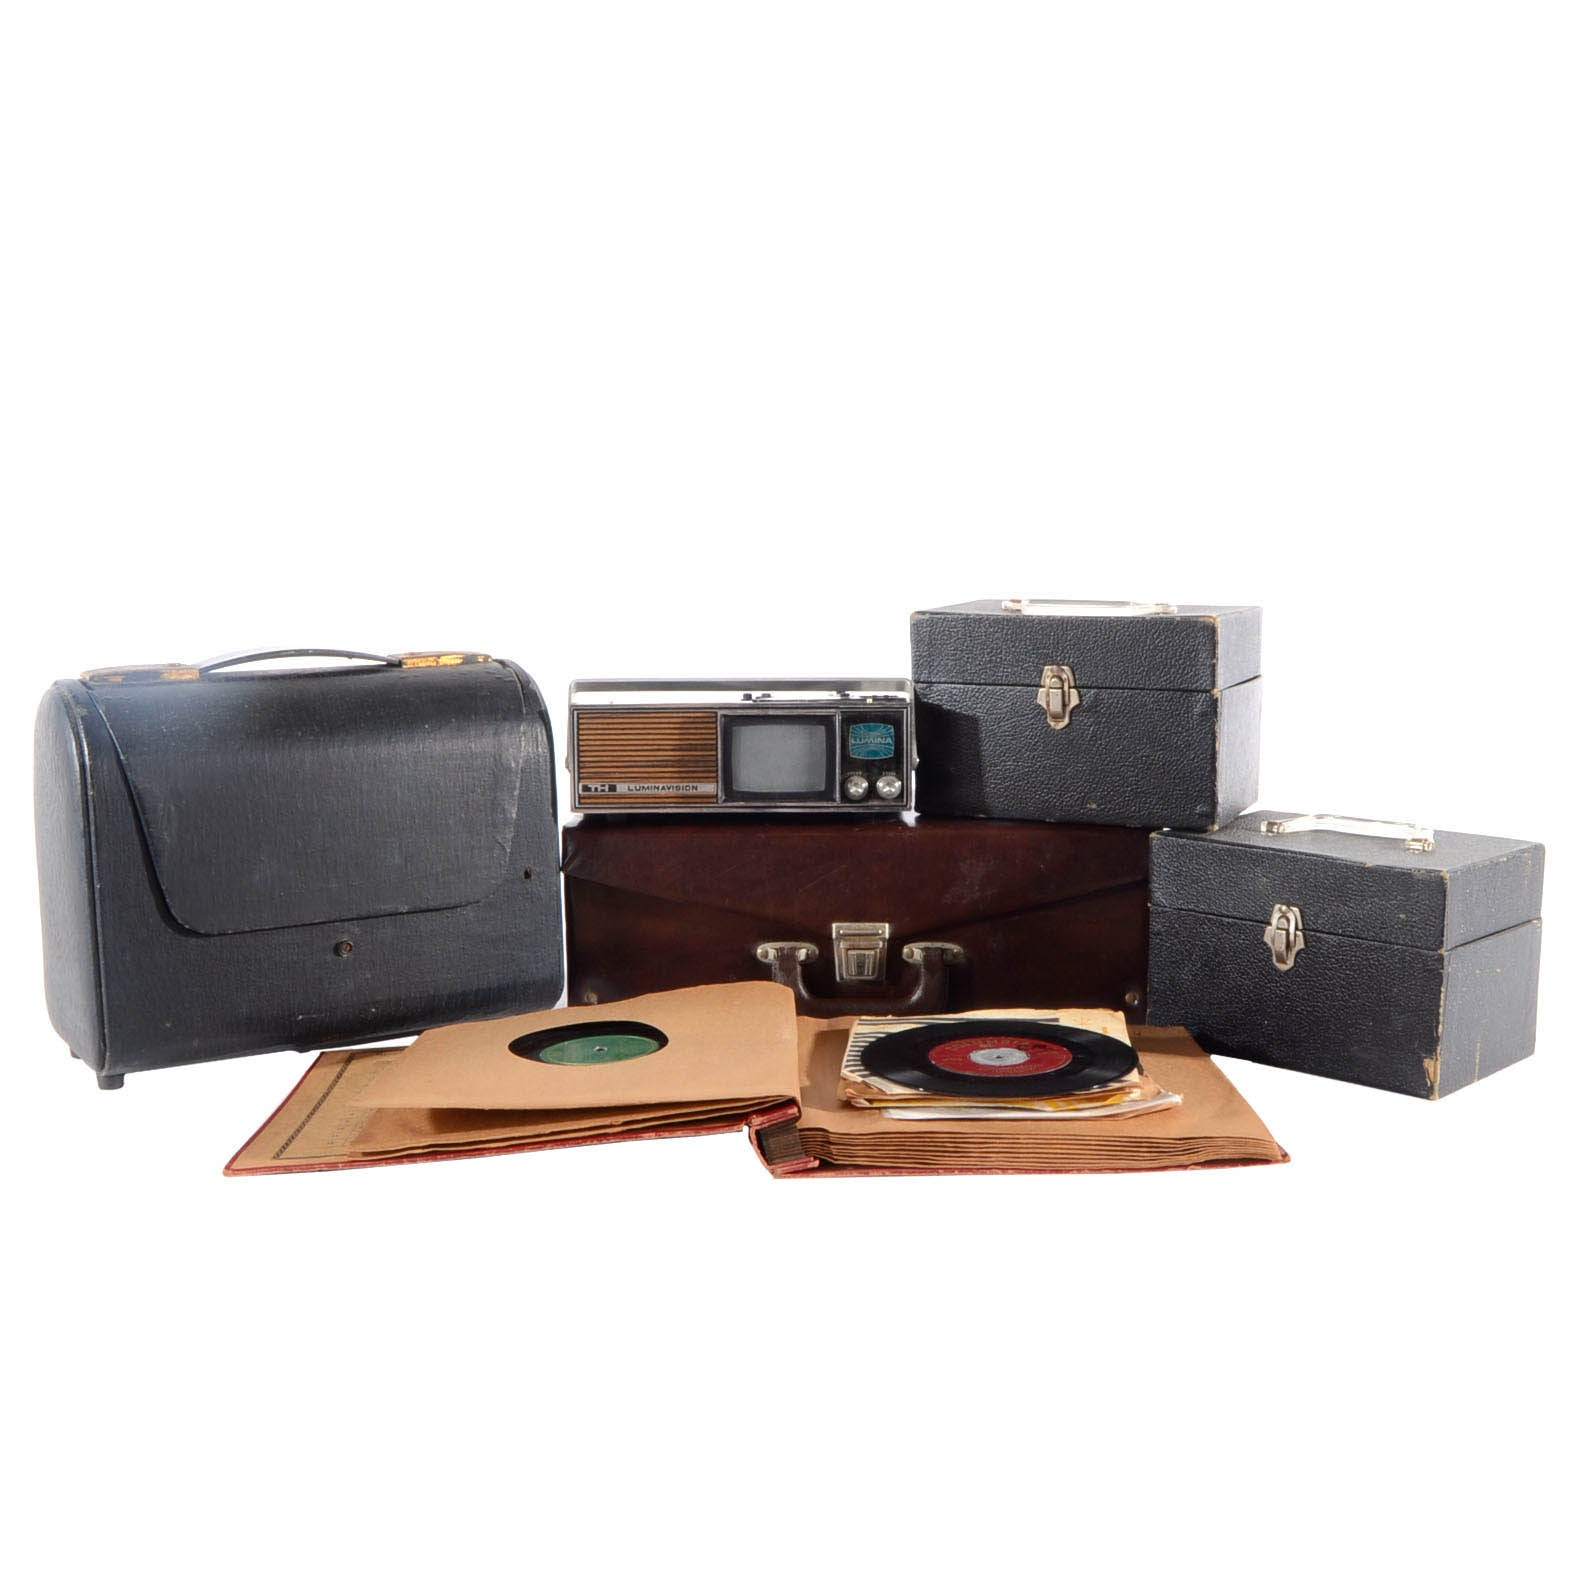 Vintage Zenith Radio and Other Electronic Accessories